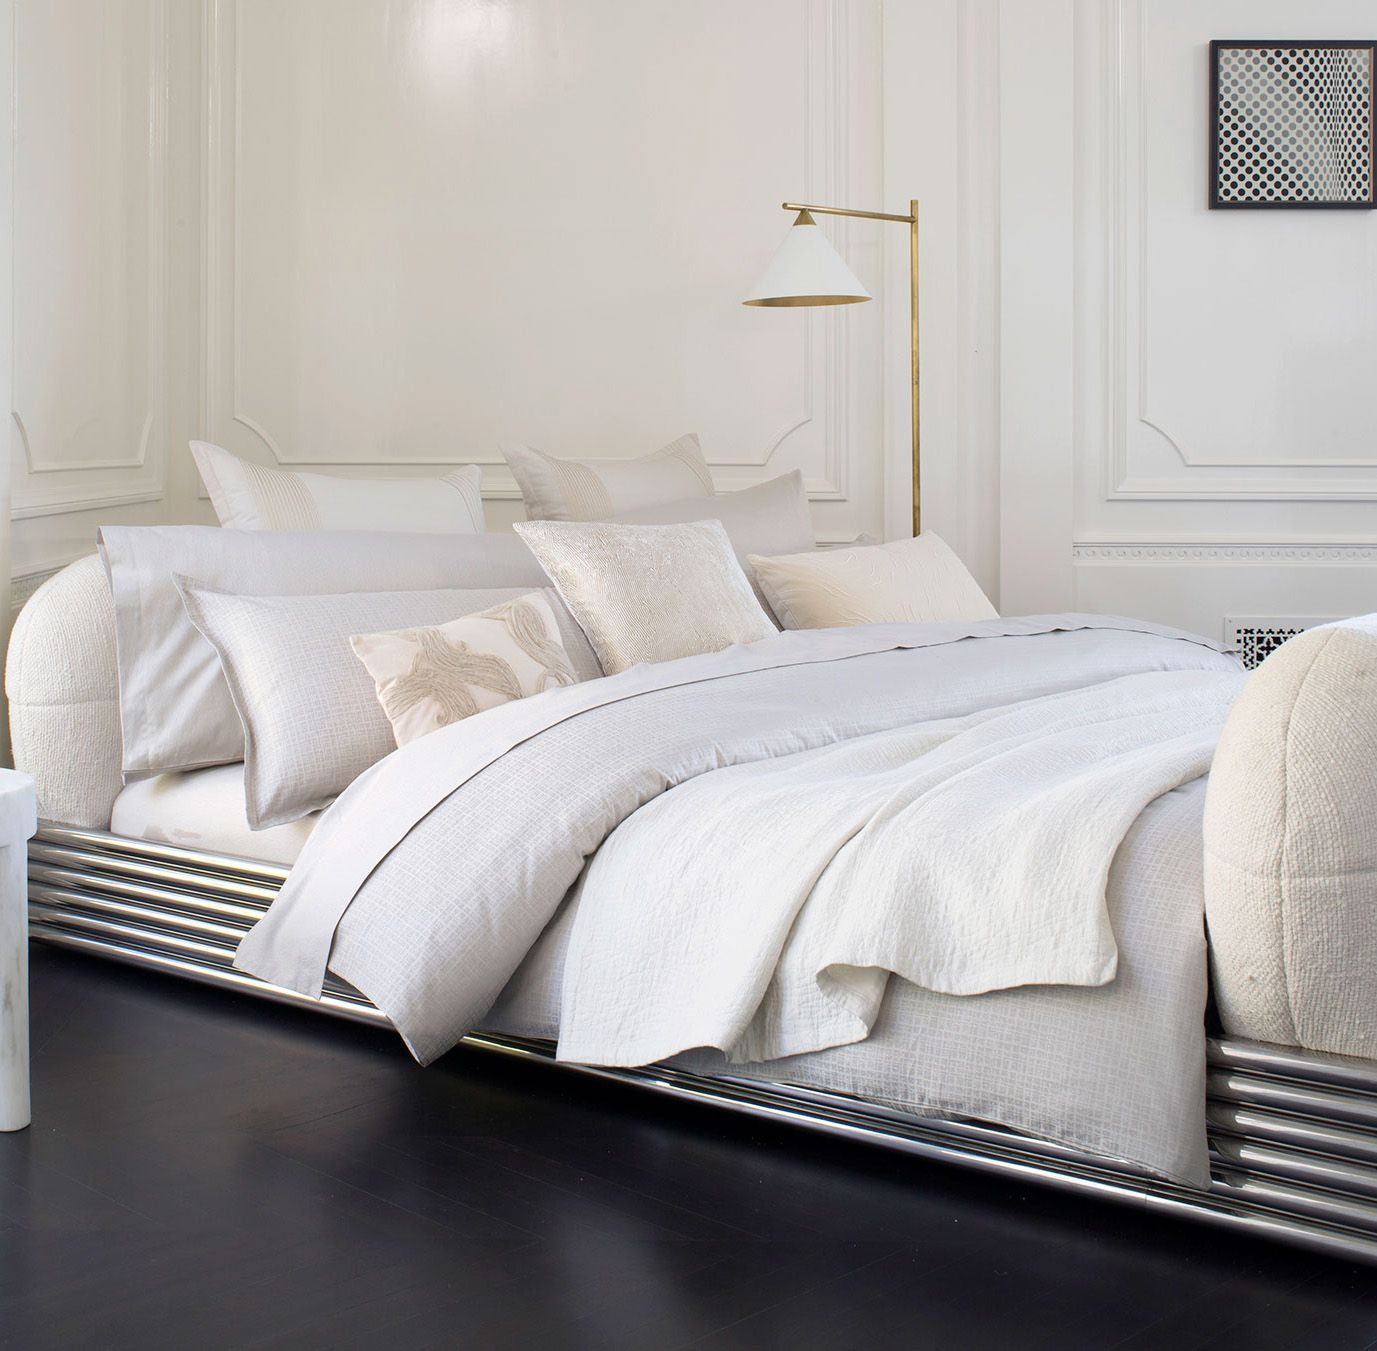 DUNE BEDDING. Elegant Bedroom Essentials